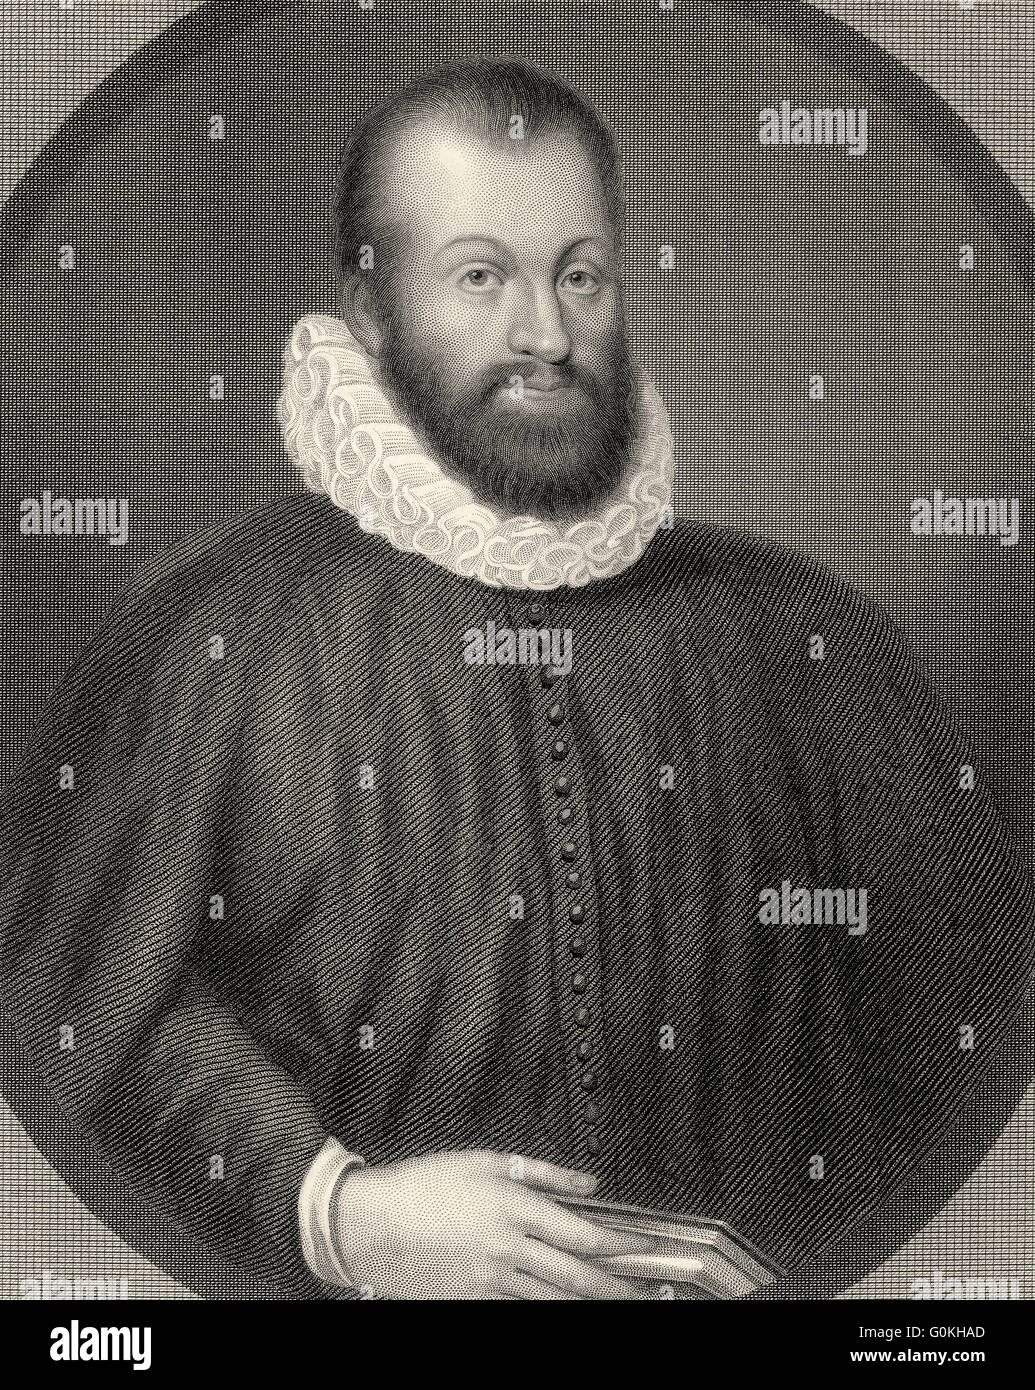 George Wishart, c. 1513-1546, a Scottish religious reformer and Protestant martyr - Stock Image